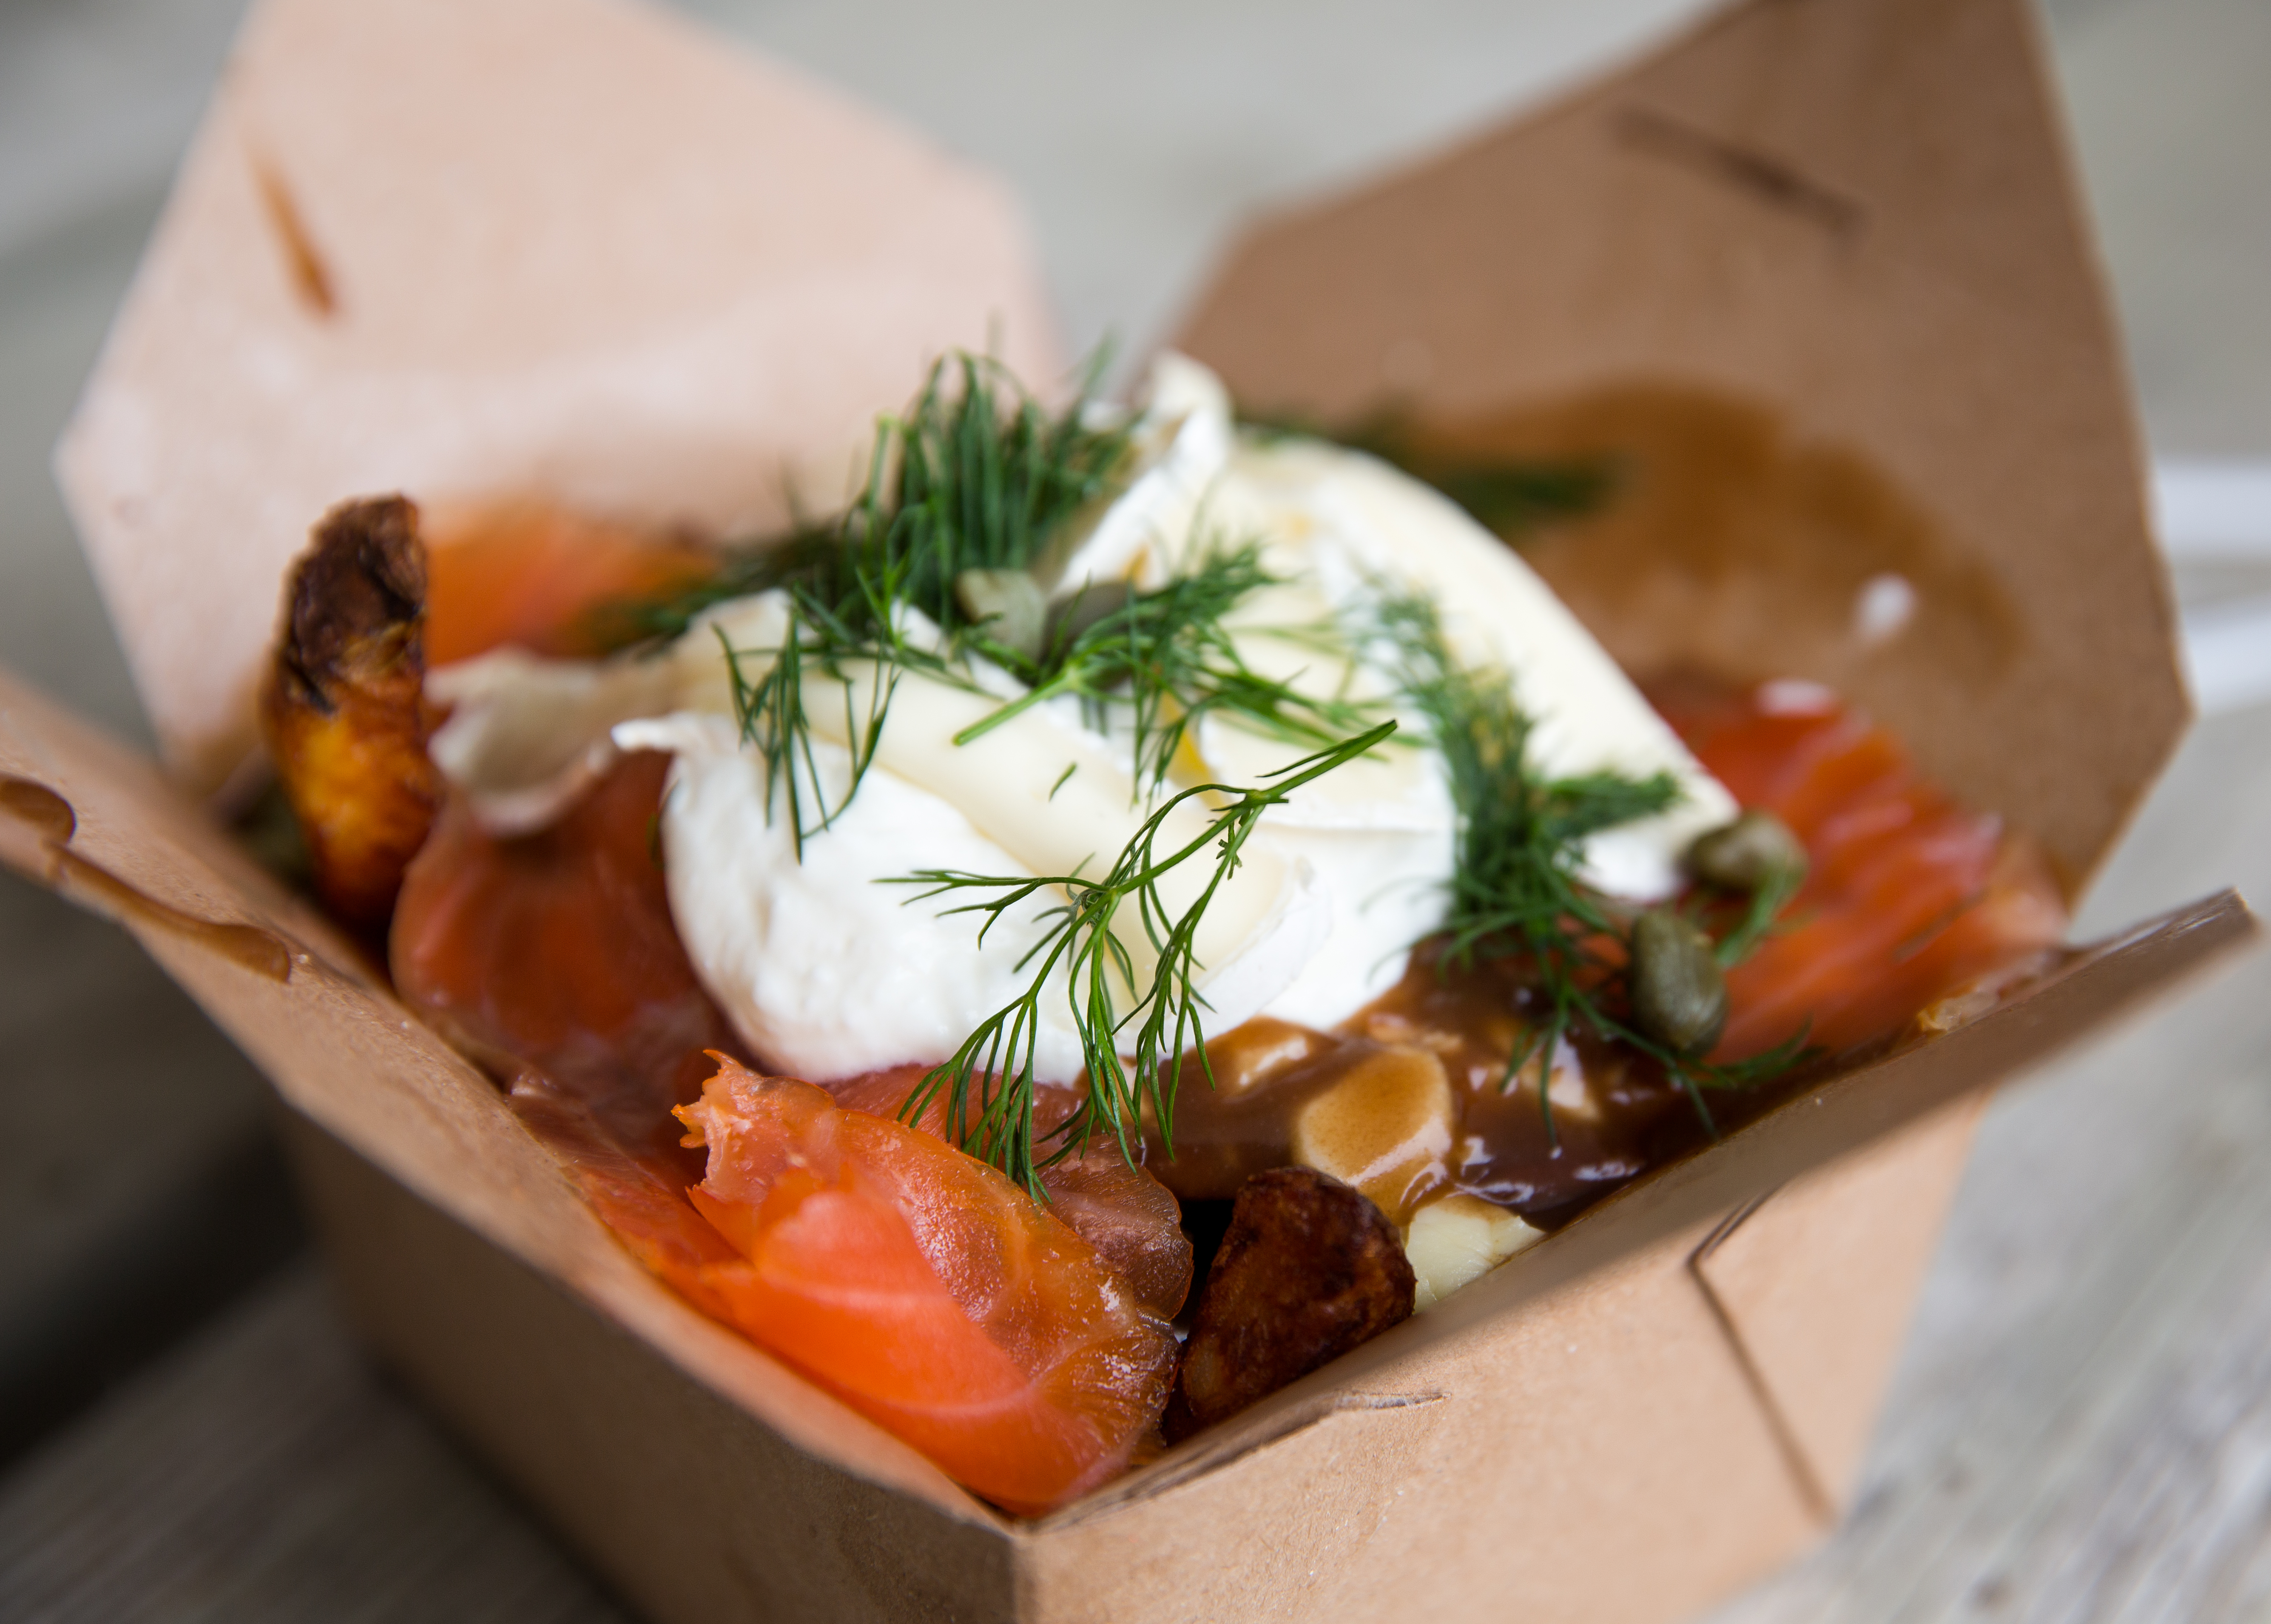 The Fisherman poutine at the Poutine King truck. Traditional poutine topped with smoked salmon, brie, sour cream, fresh dill and capers. Red River Ex food reviews - Jen Zoratti story 140613 - Friday, June 13, 2014 - (Melissa Tait / Winnipeg Free Press)